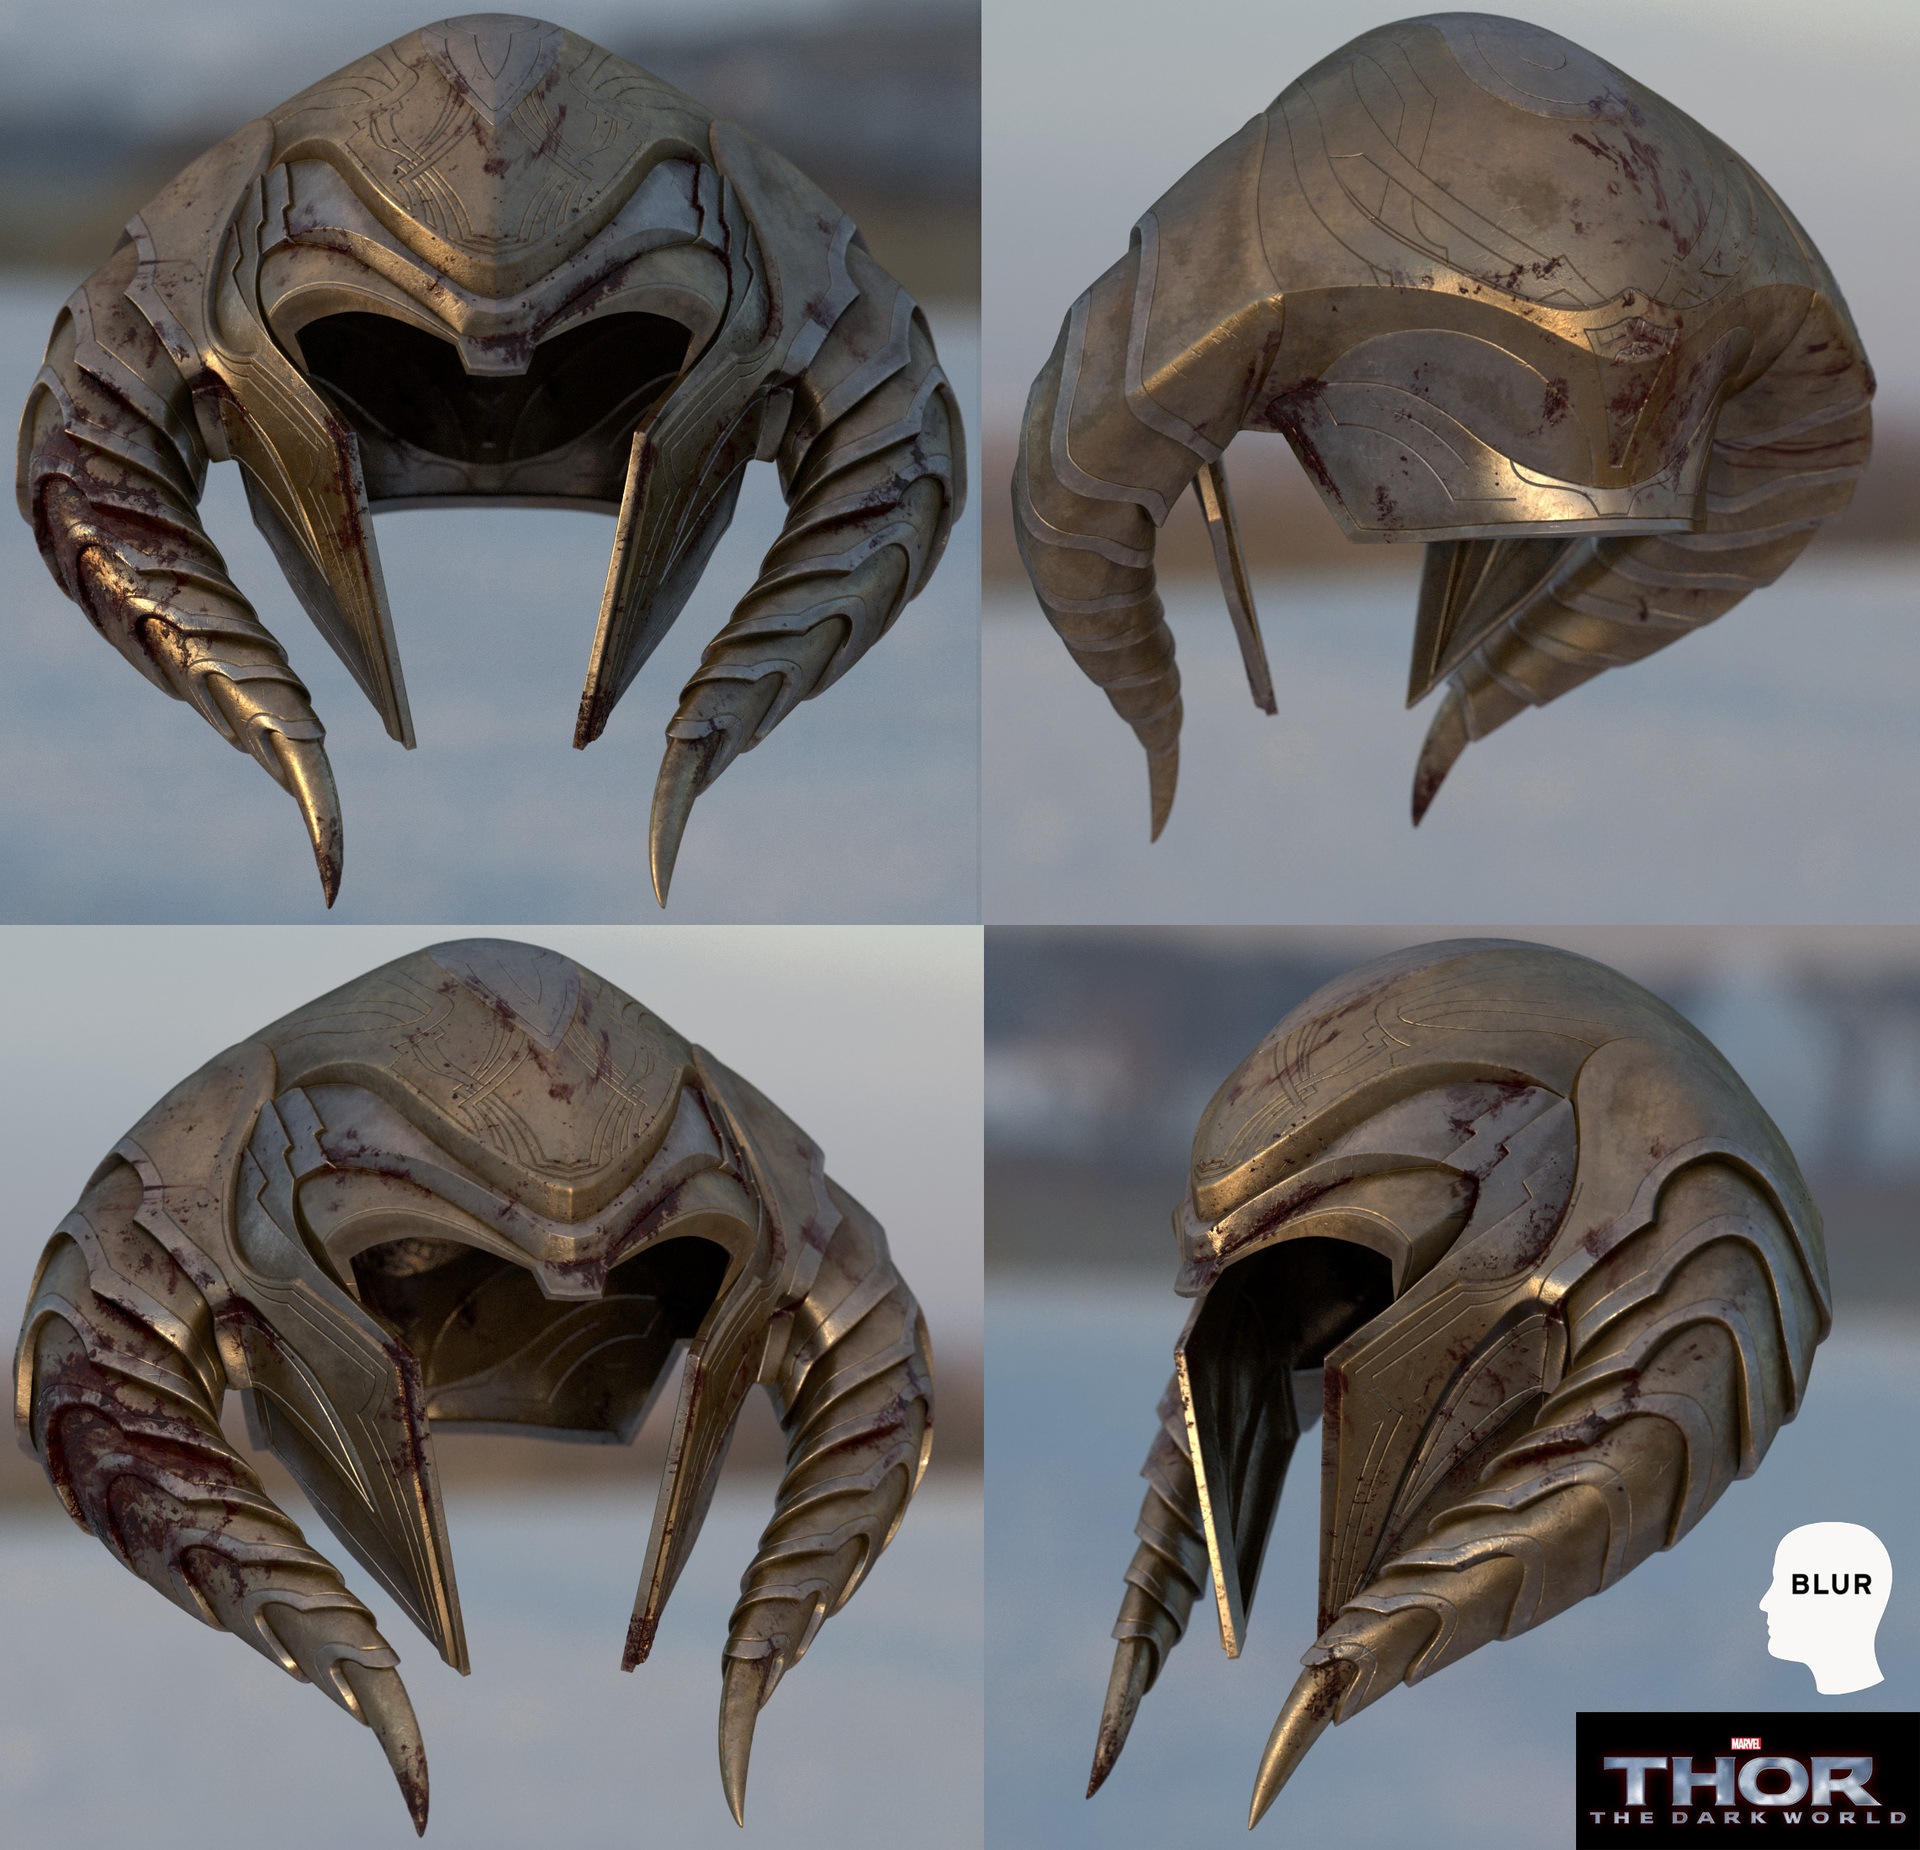 An asset for Blur Studio's prologue for Thor: The Dark World.